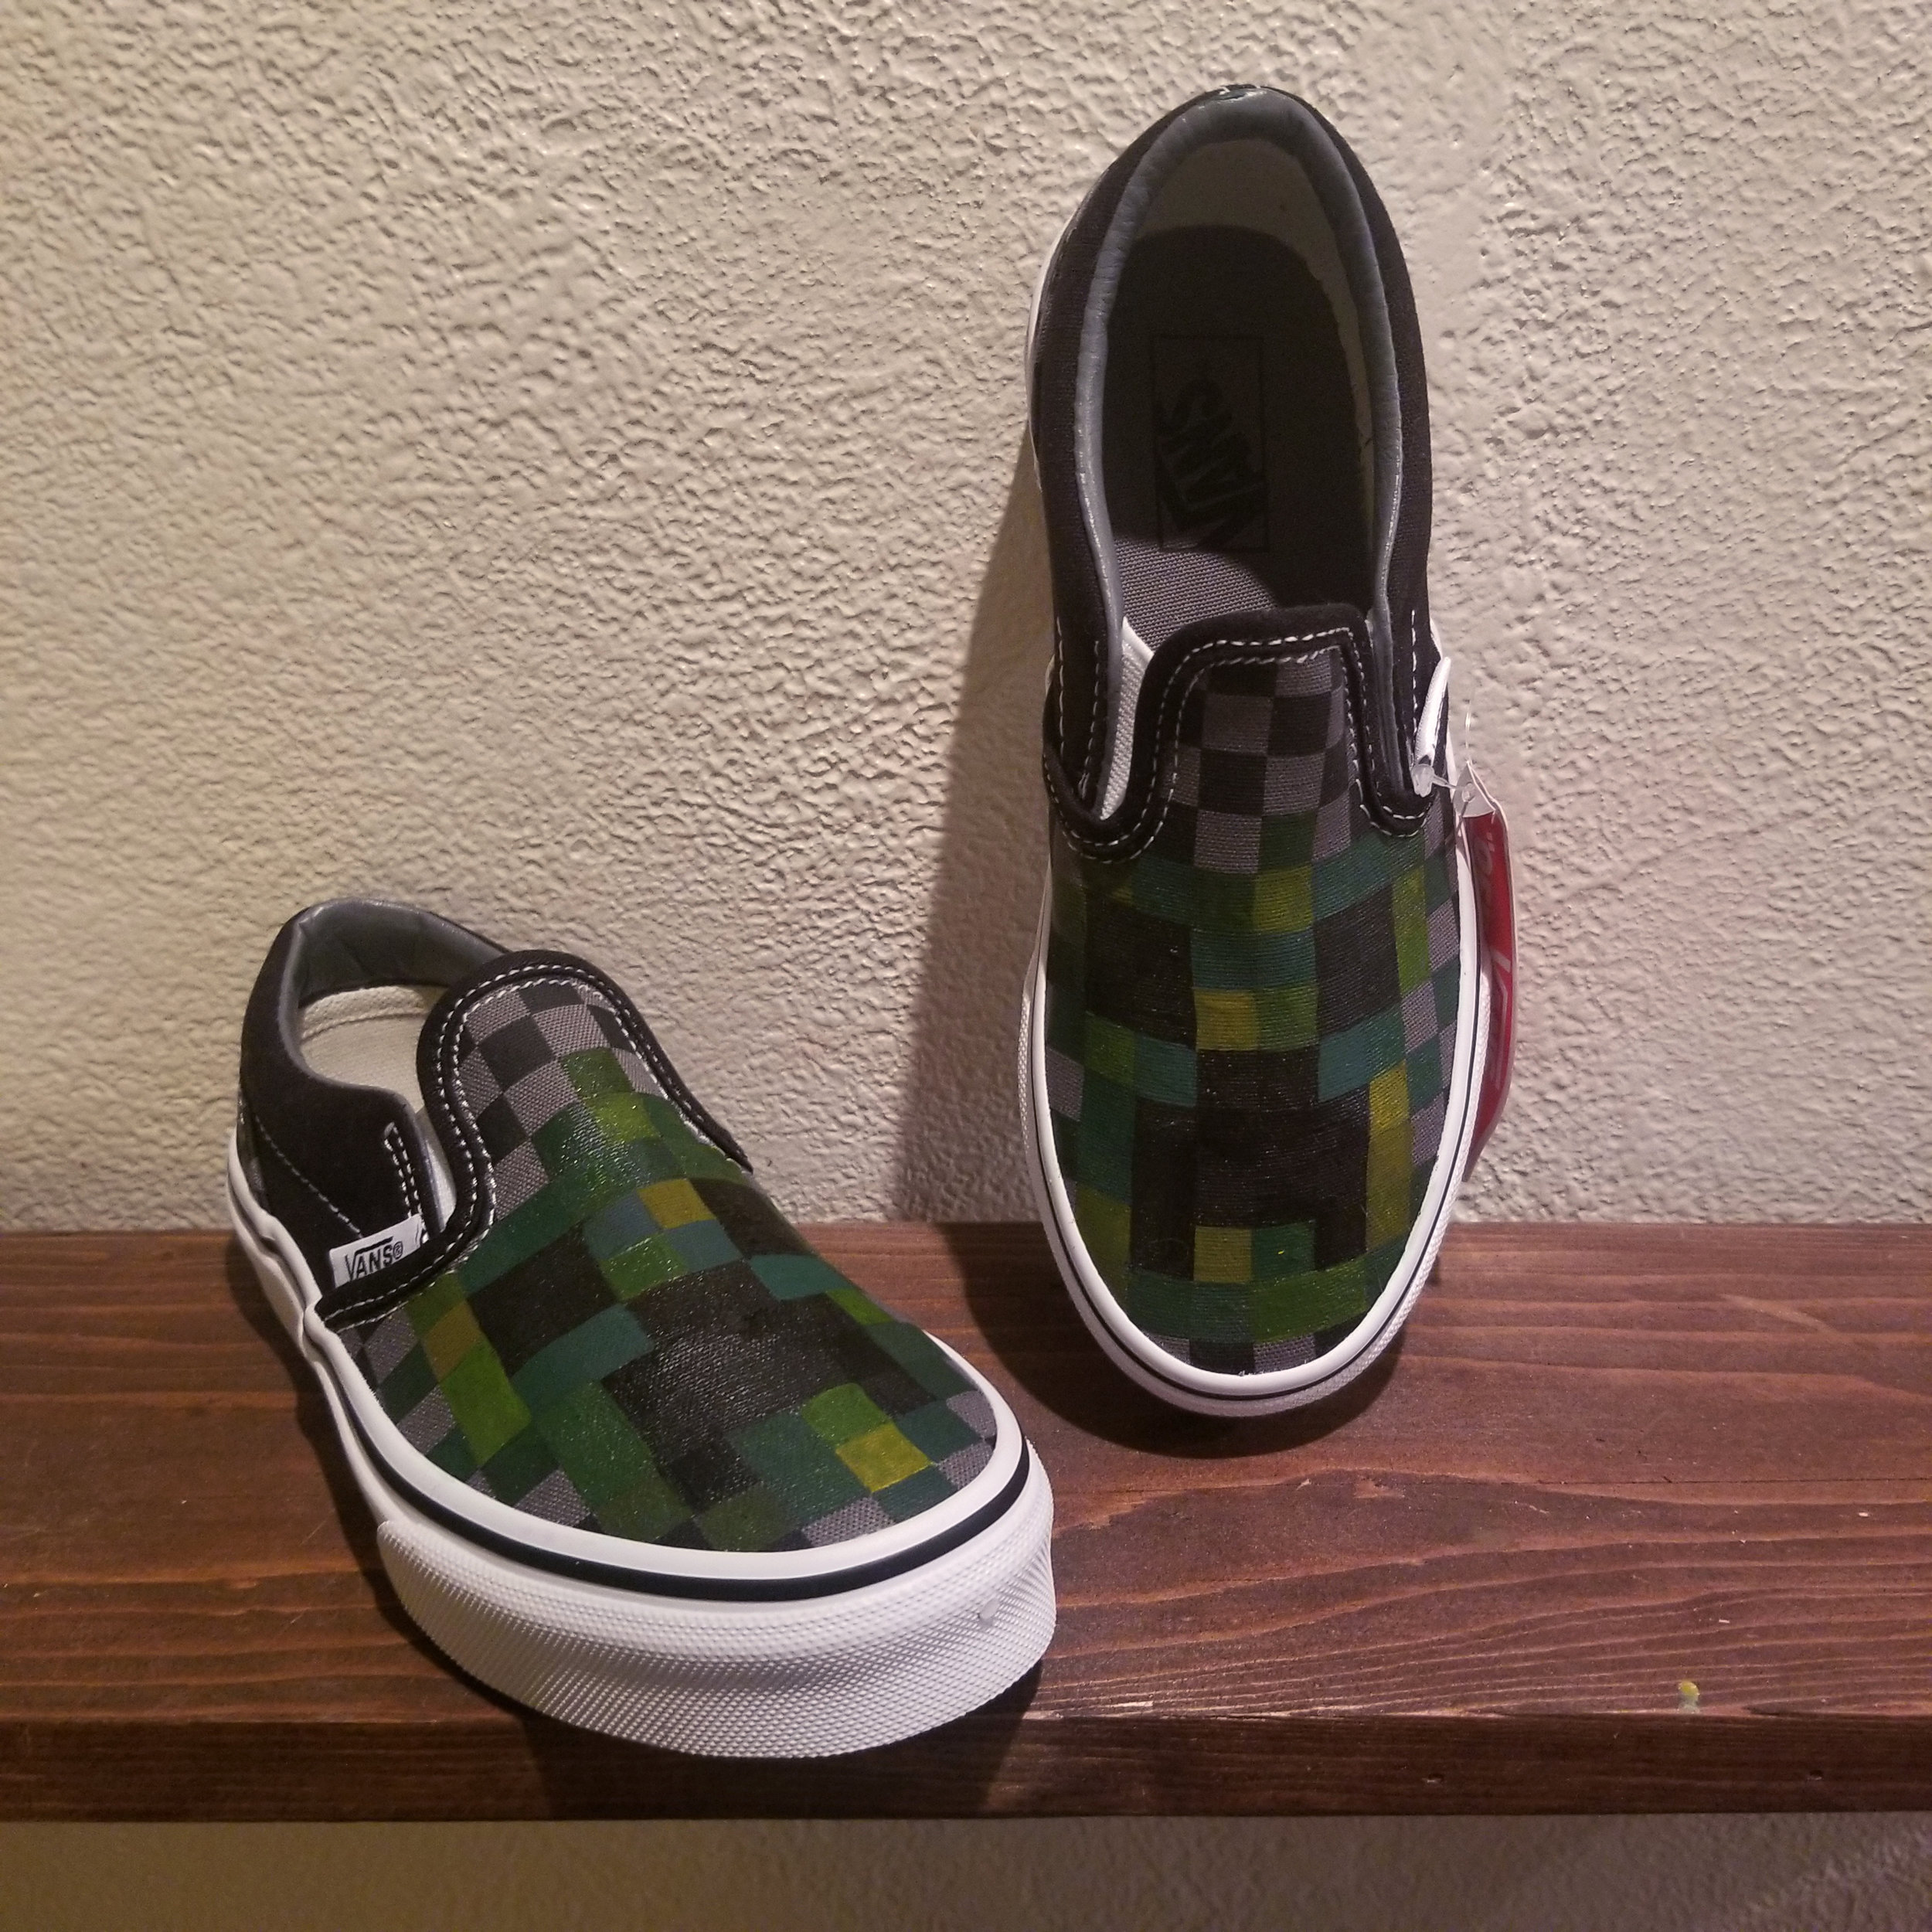 A pair of Minecraft-inspired Vans I painted for my nephew's b-day, 2019.